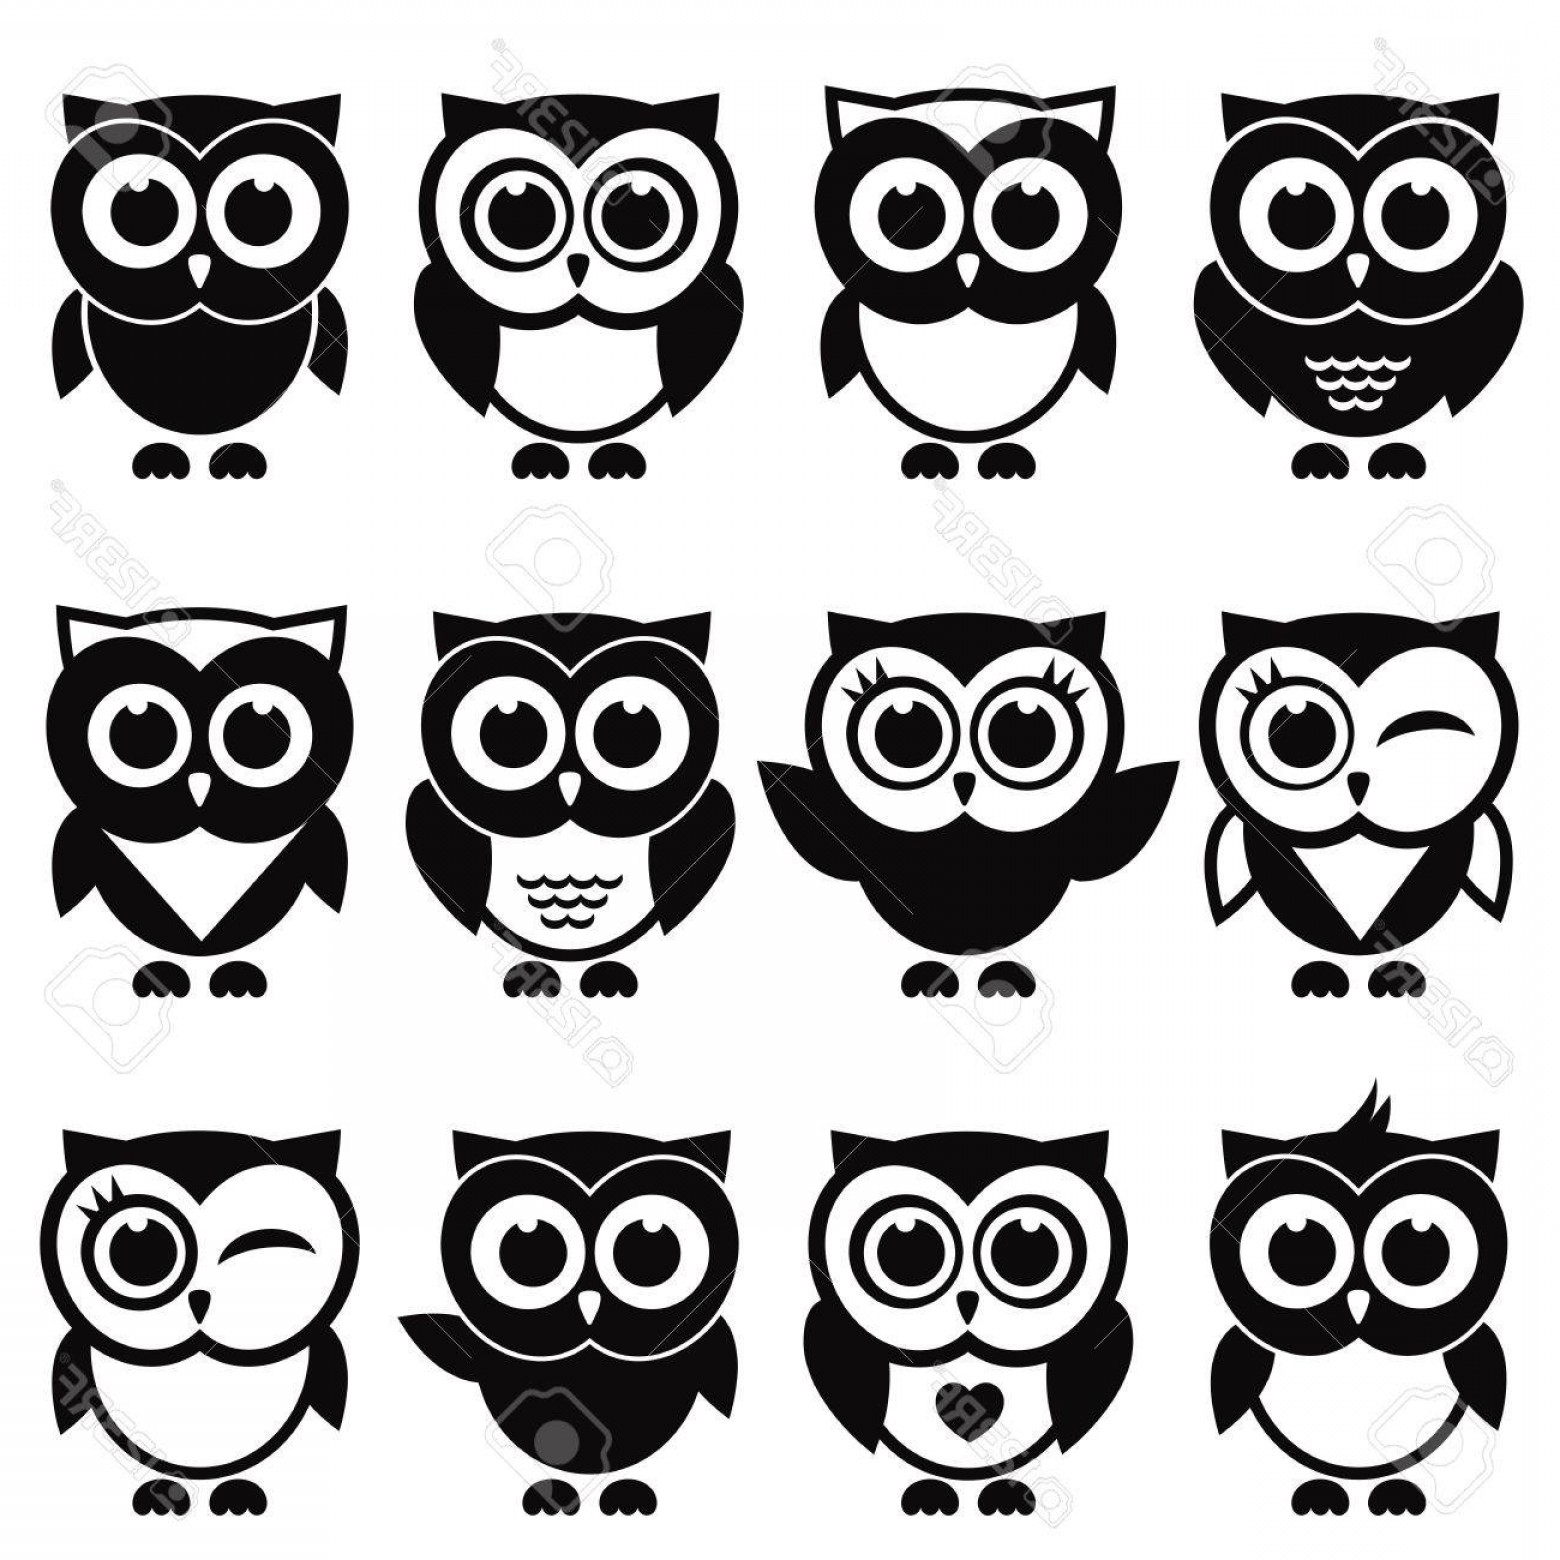 Funny Black And White Vector: Photostock Vector Funny Black And White Owls And Owlets